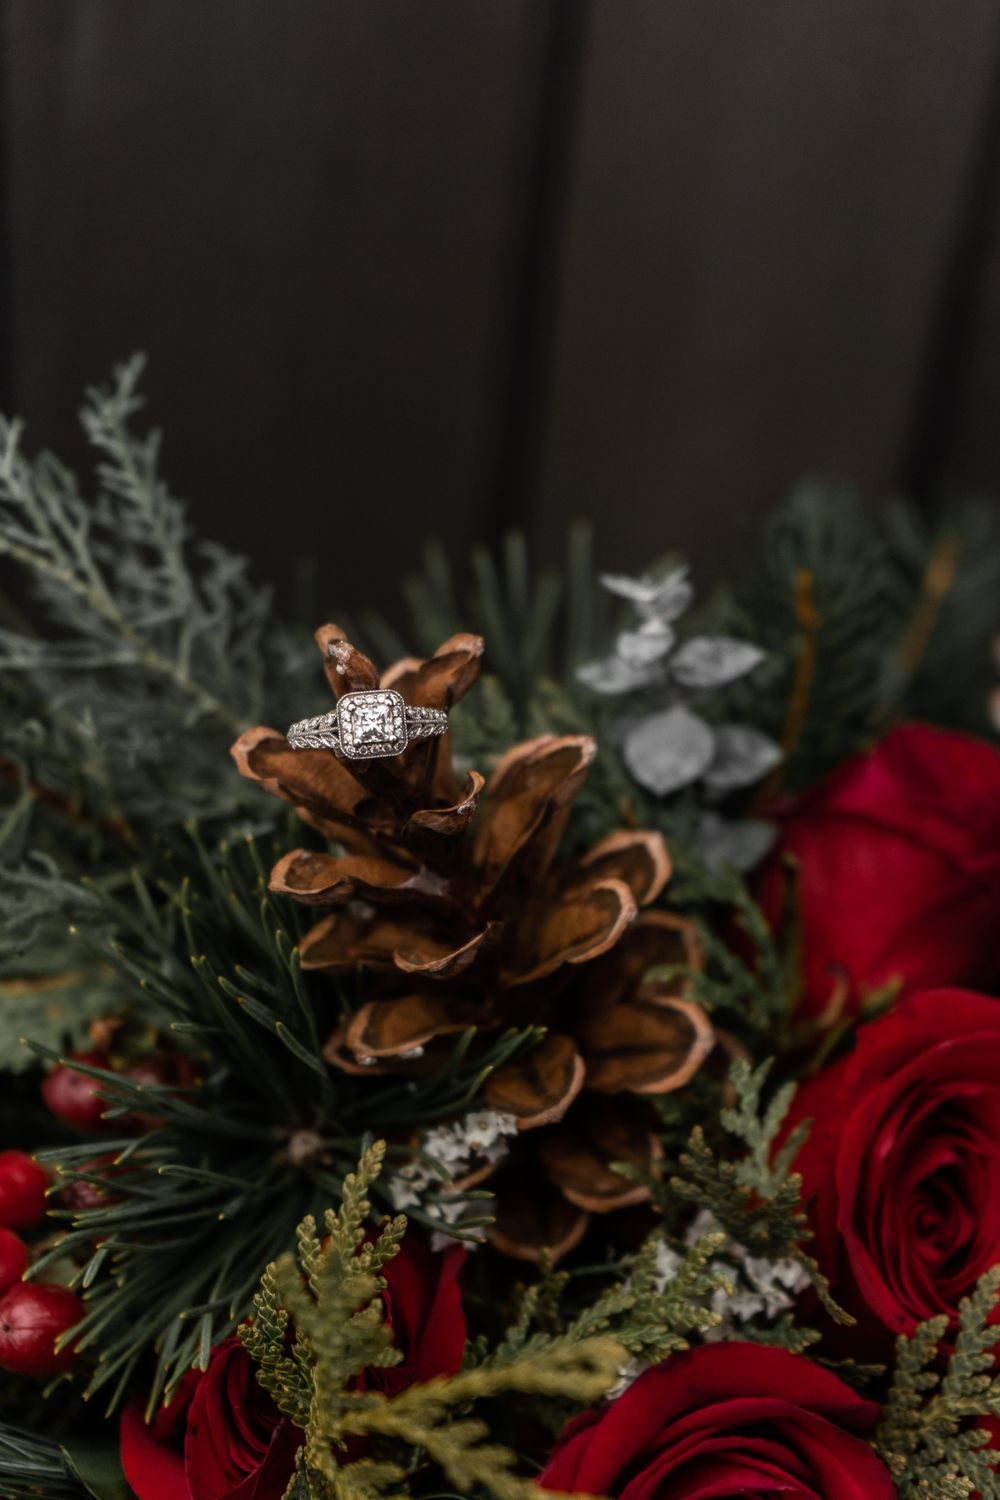 engagement ring in winter Christmas floral bouquet alexis Burton Hamilton wedding photographer